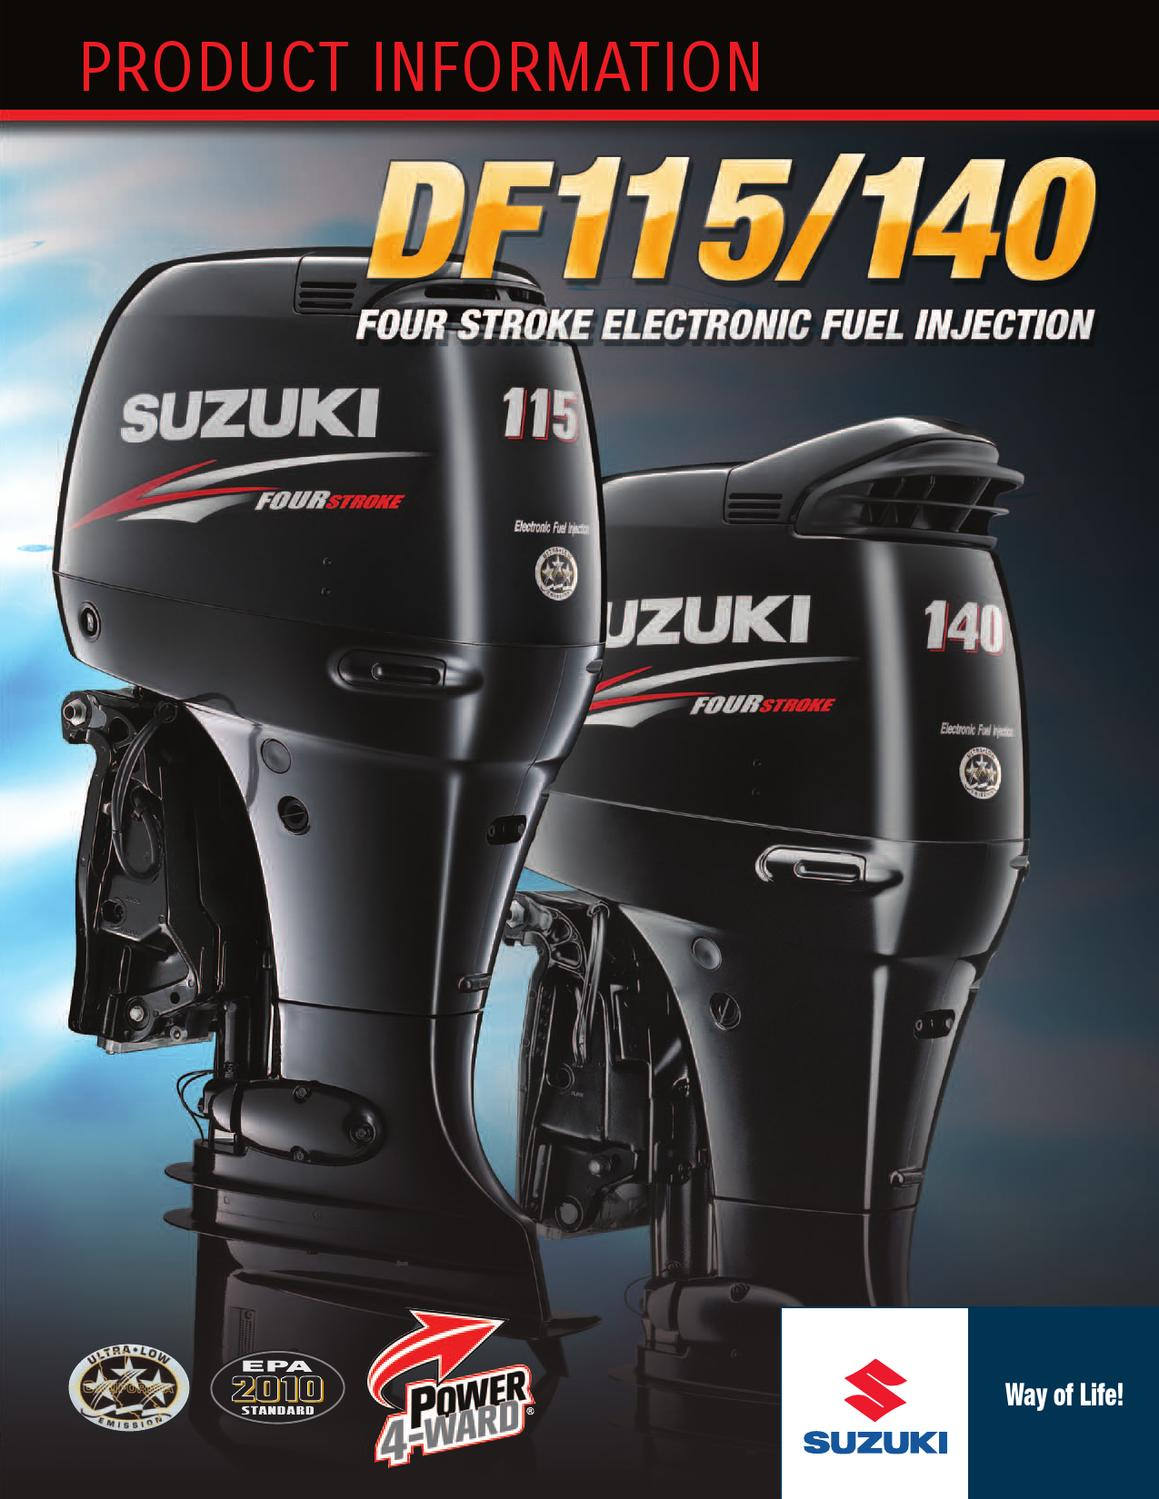 Suzuki Outboards 115-140 by GARZON STUDIO - issuu